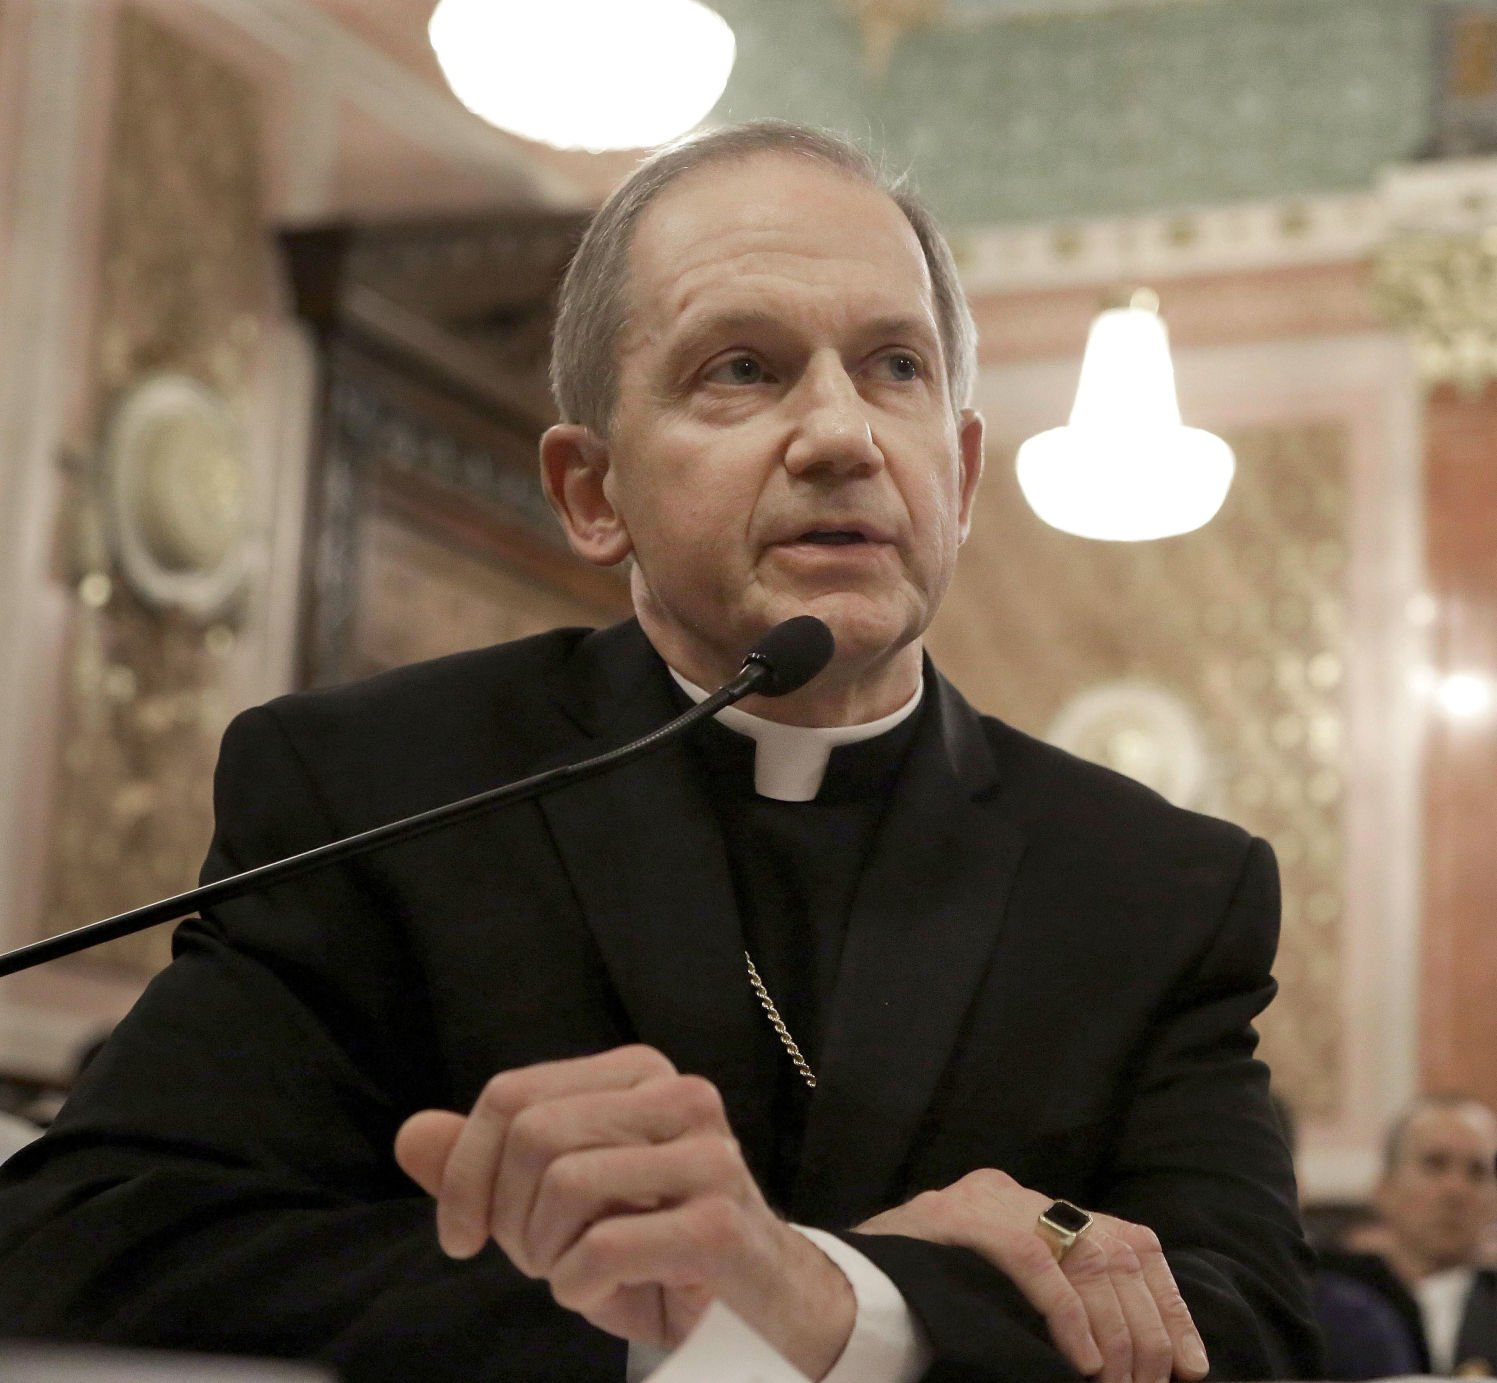 Illinois Abortion Bishop Communion Ban